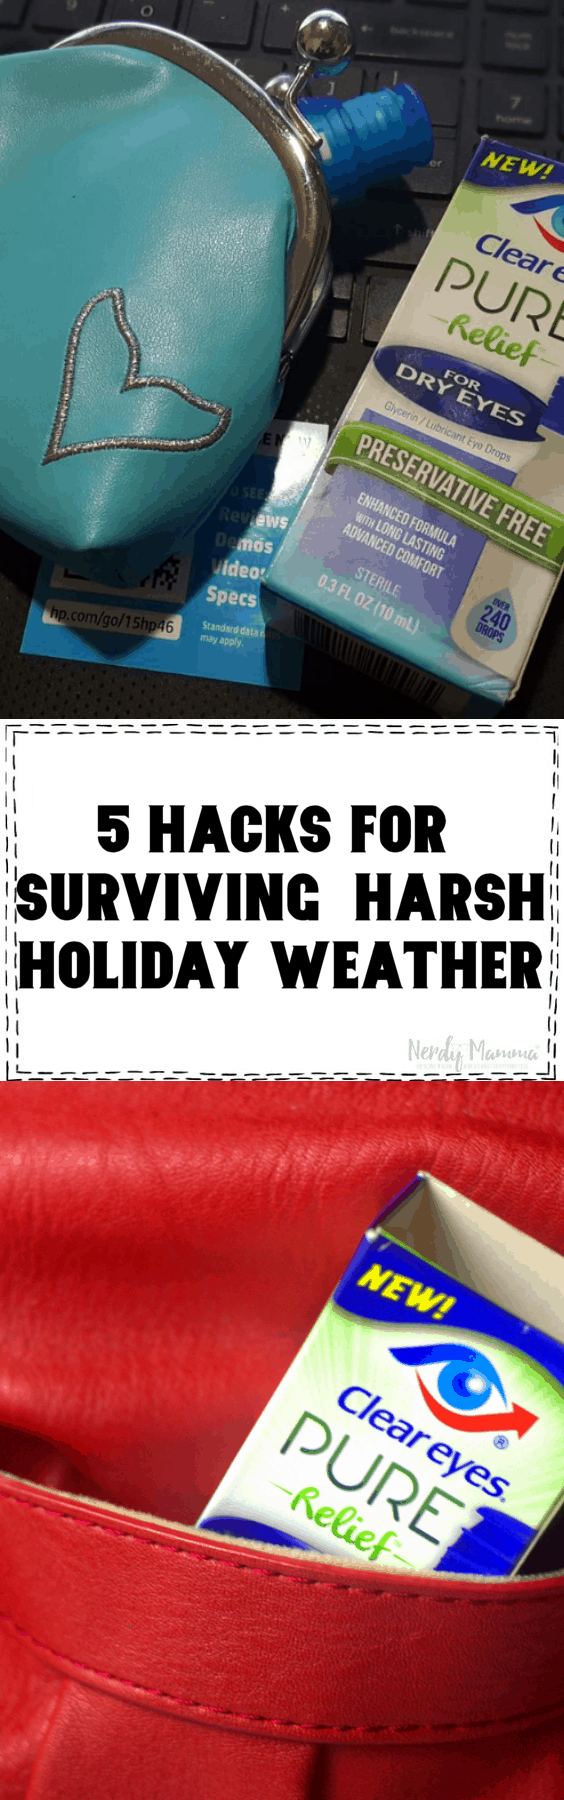 5 Hacks For Surviving Harsh Holiday Weather Nerdy Mamma